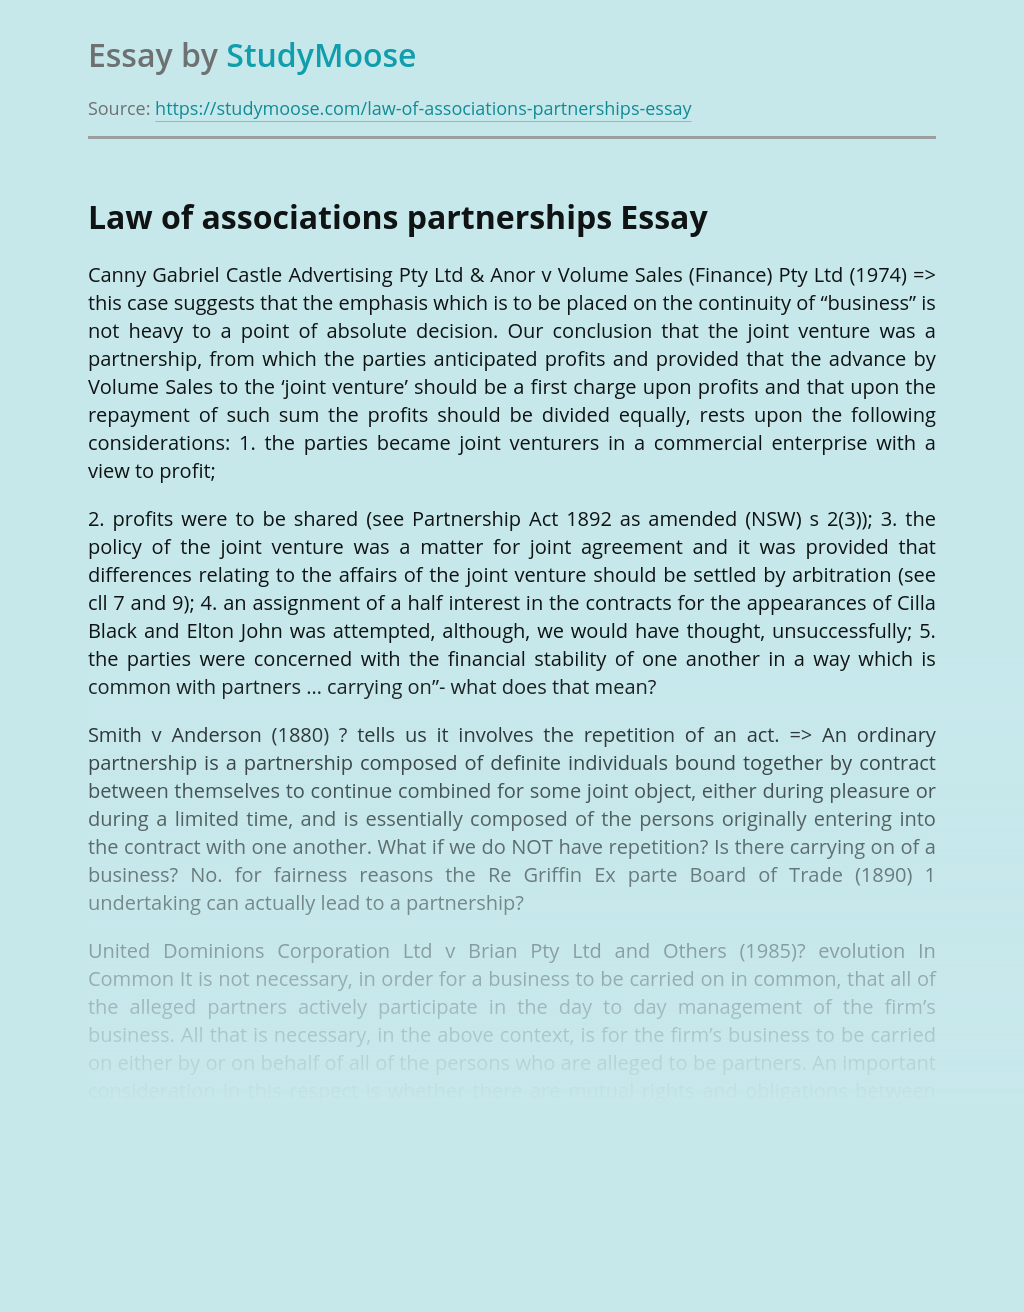 Law of associations partnerships